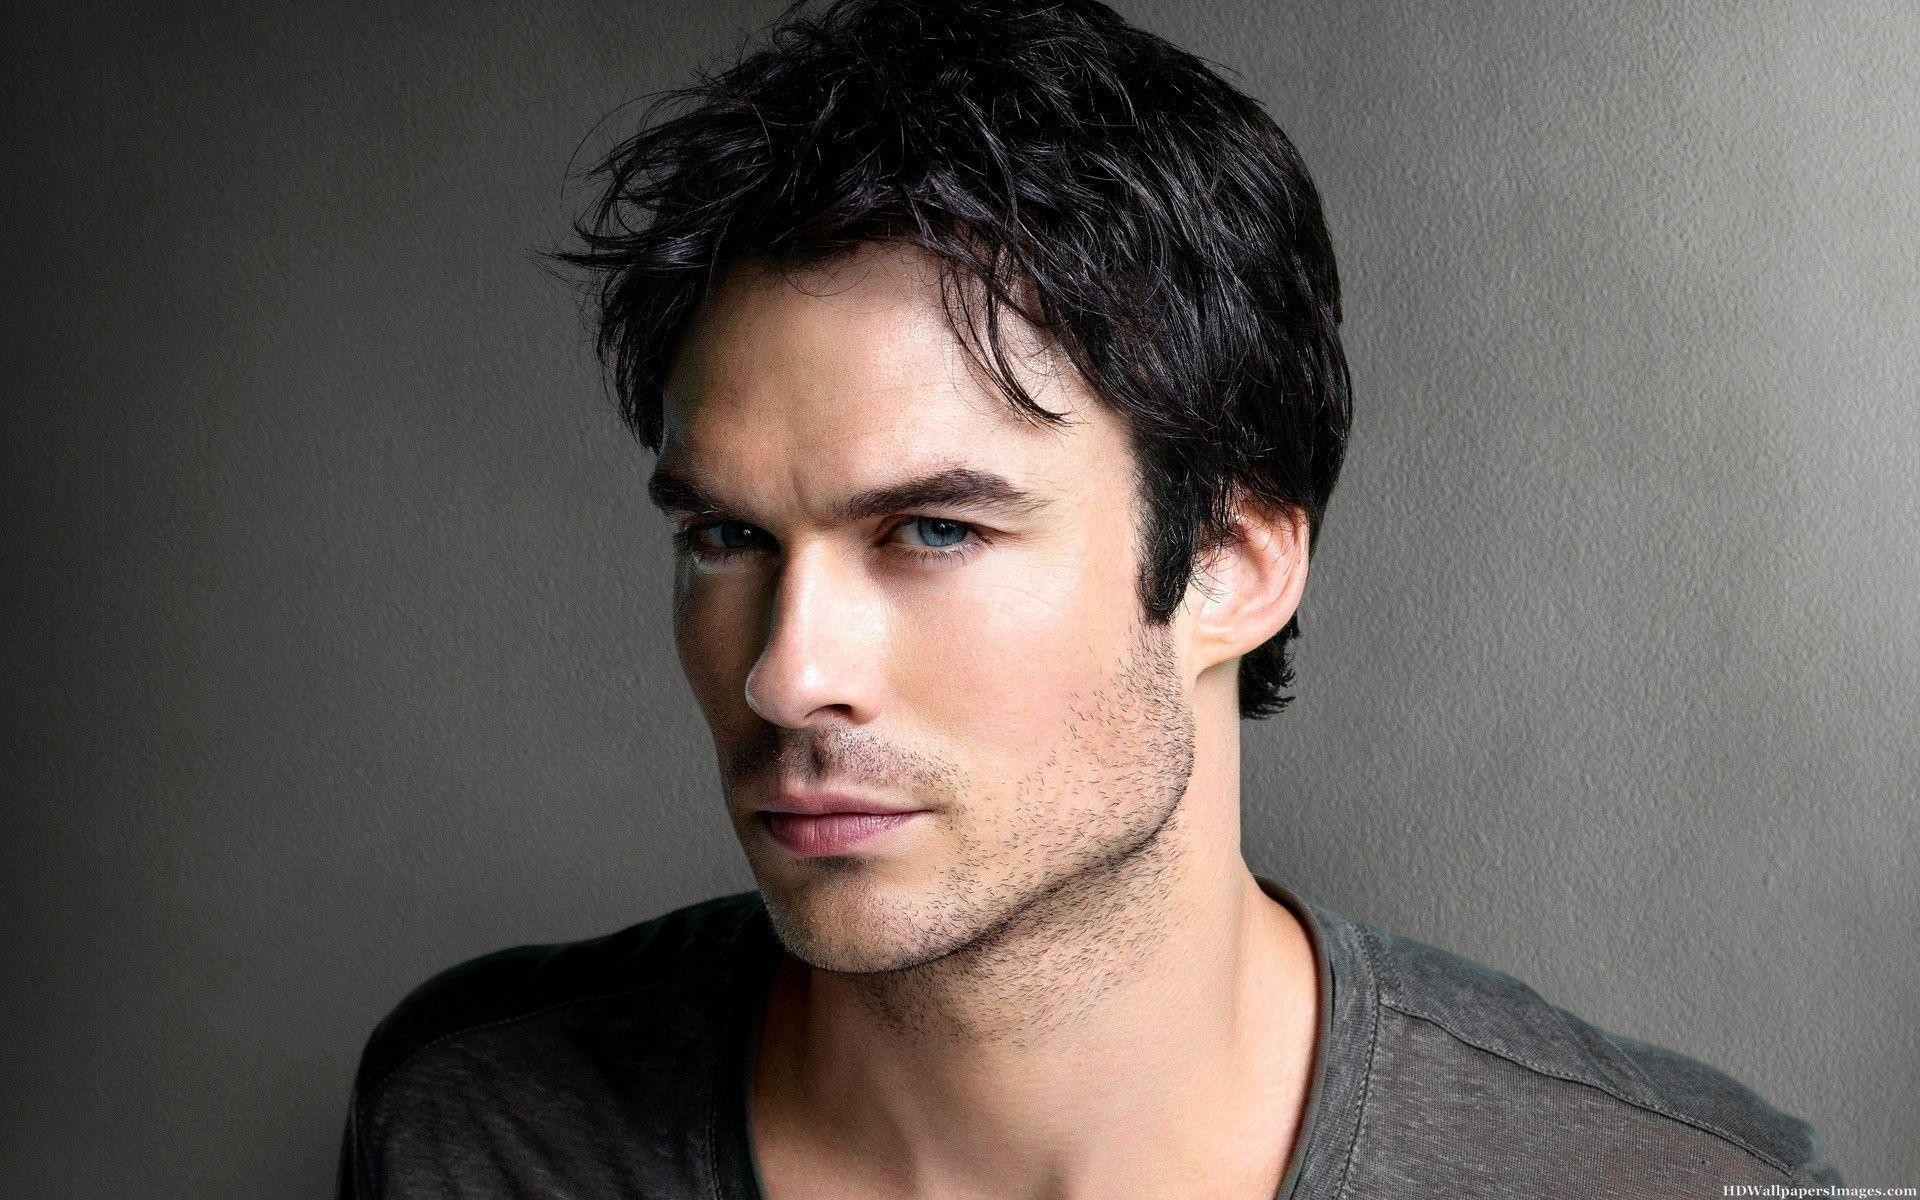 You Are Viewing Wallpaper Titled Ian Somerhalder - Actor Ian Somerhalder , HD Wallpaper & Backgrounds